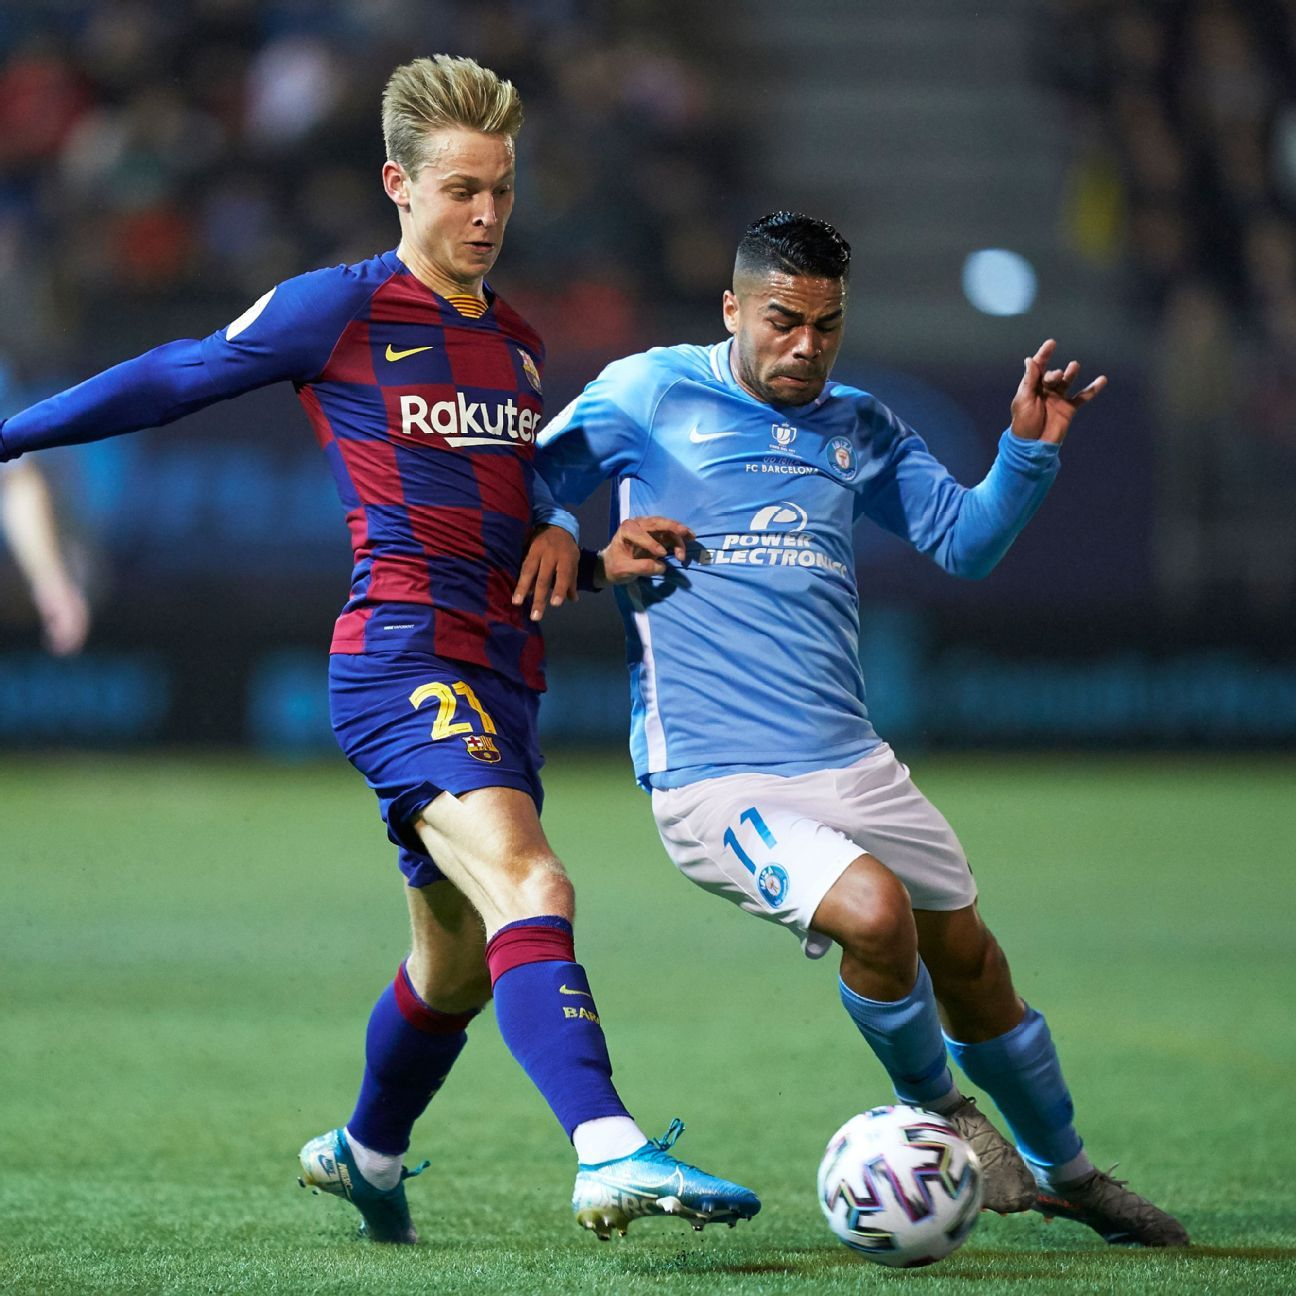 Barcelona squeak by tiny Ibiza with second-half Antoine Griezmann brace